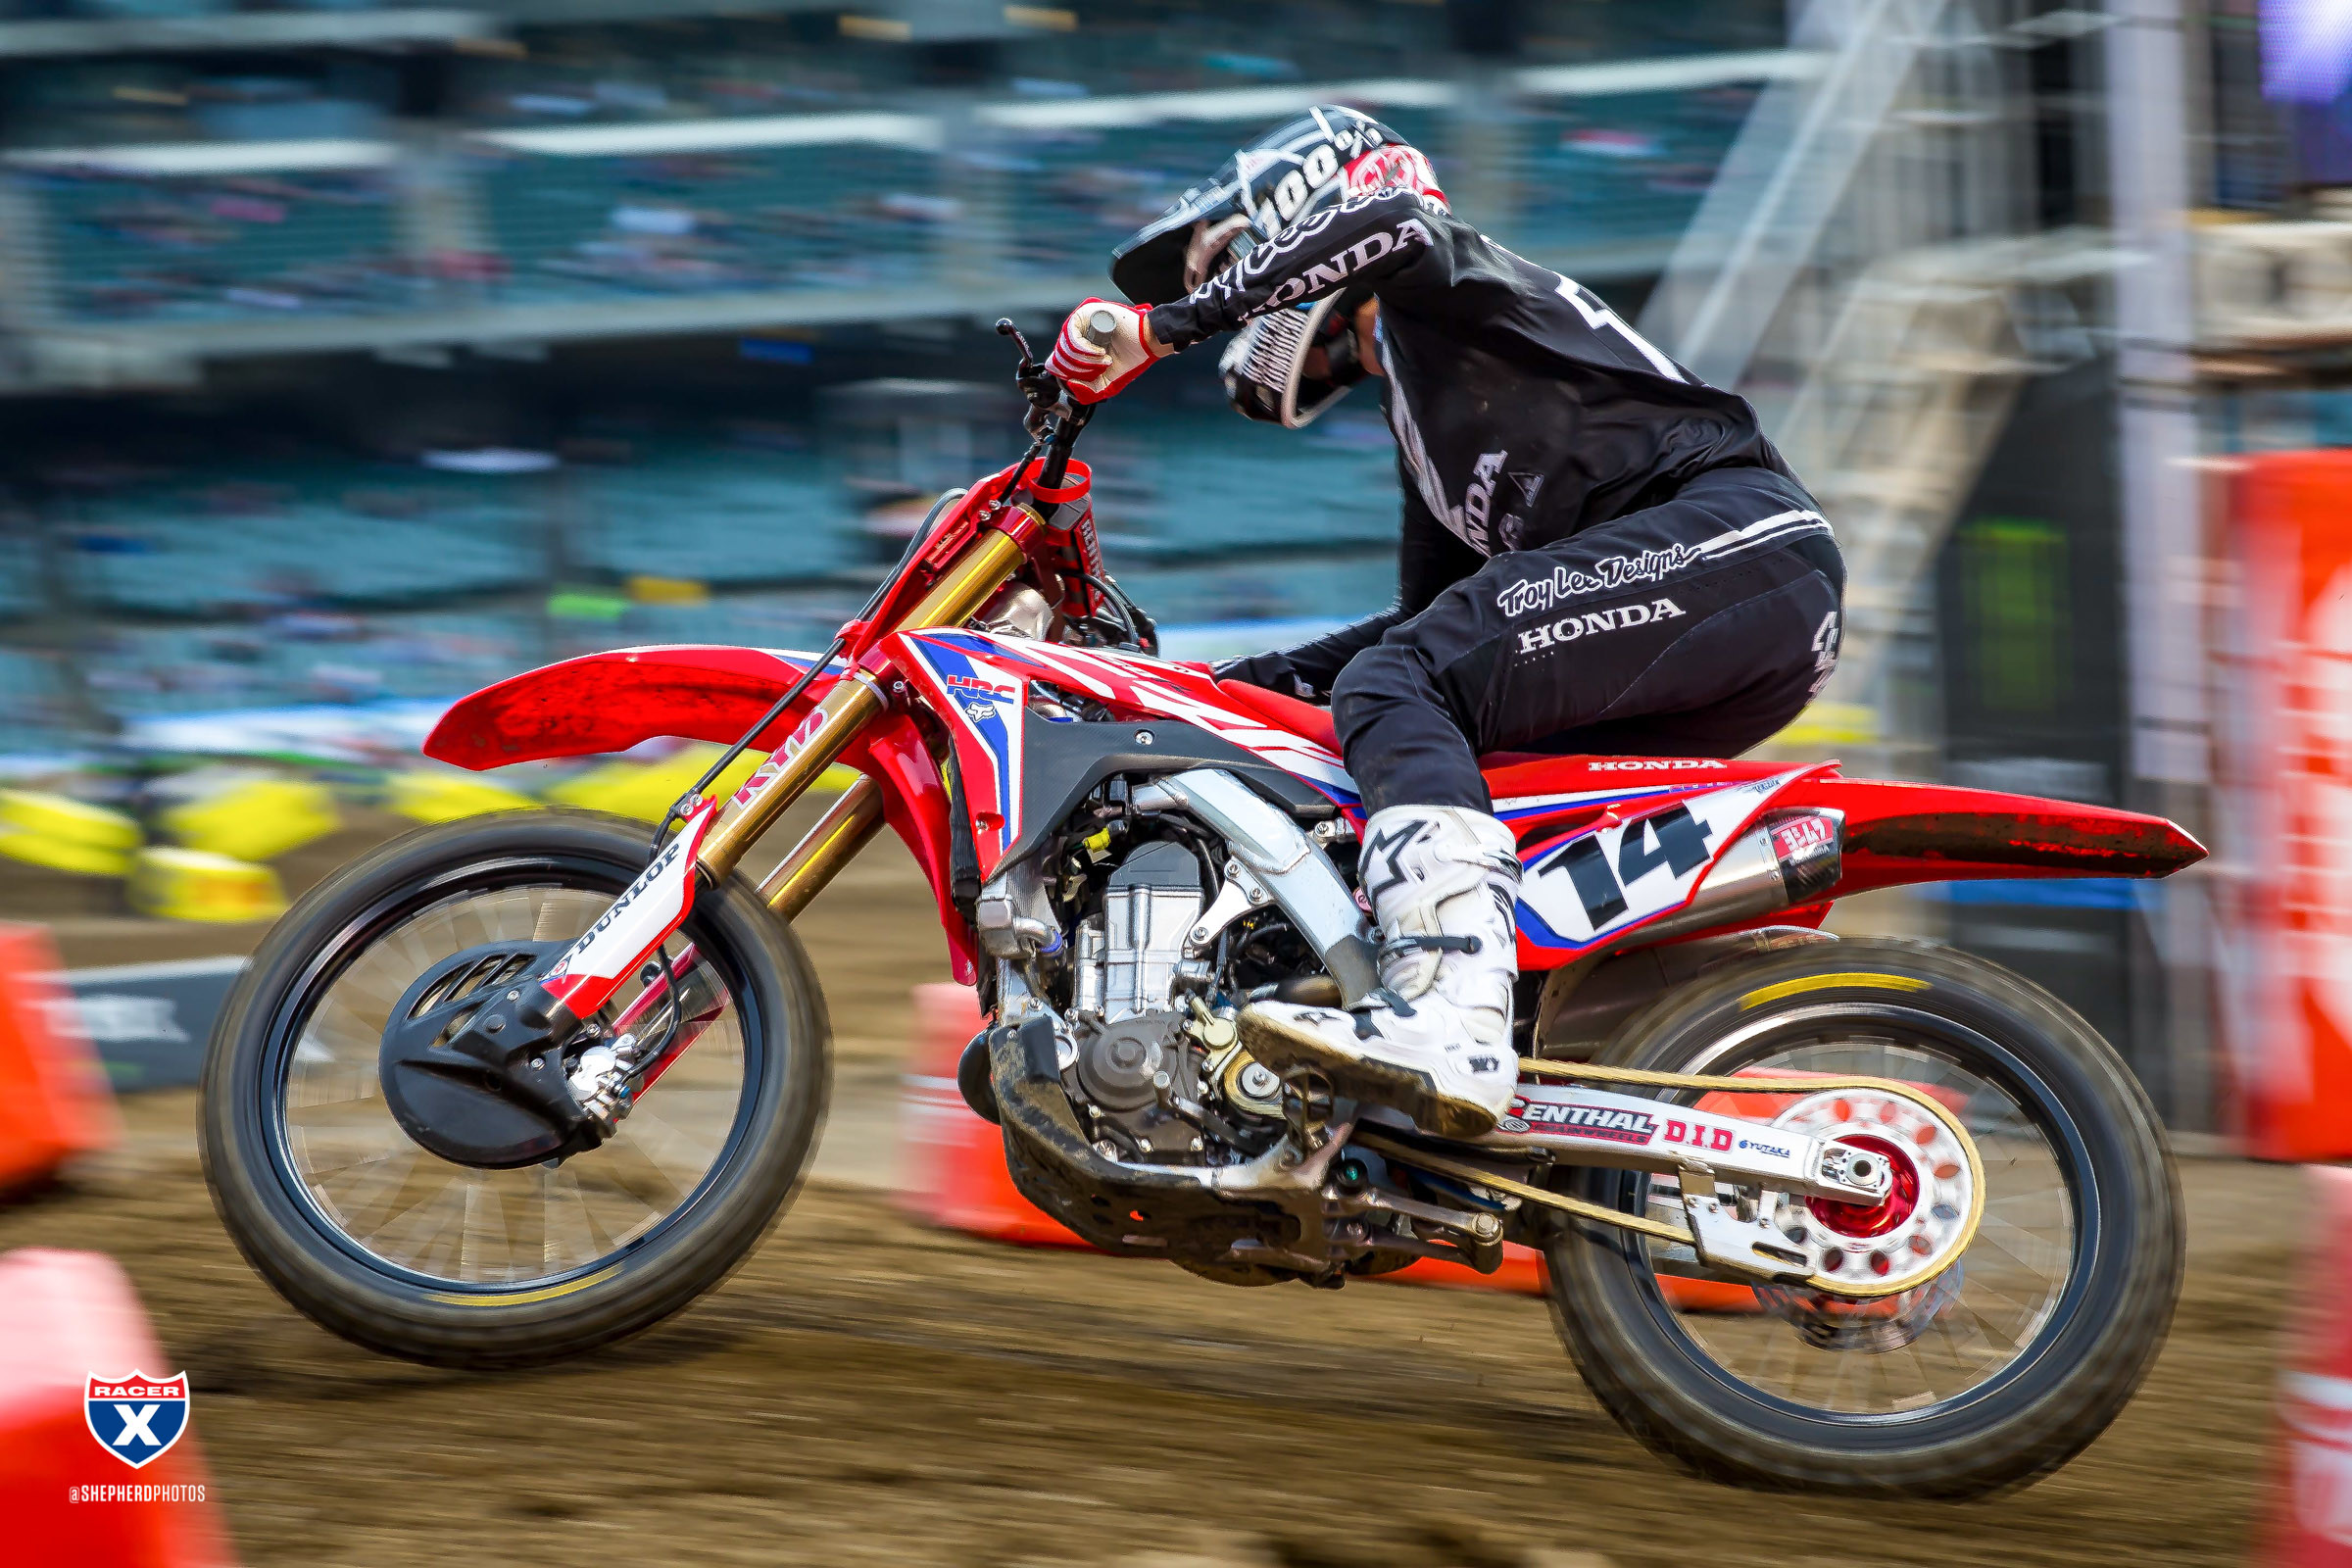 Seely_RS_SX19_Oakland_035